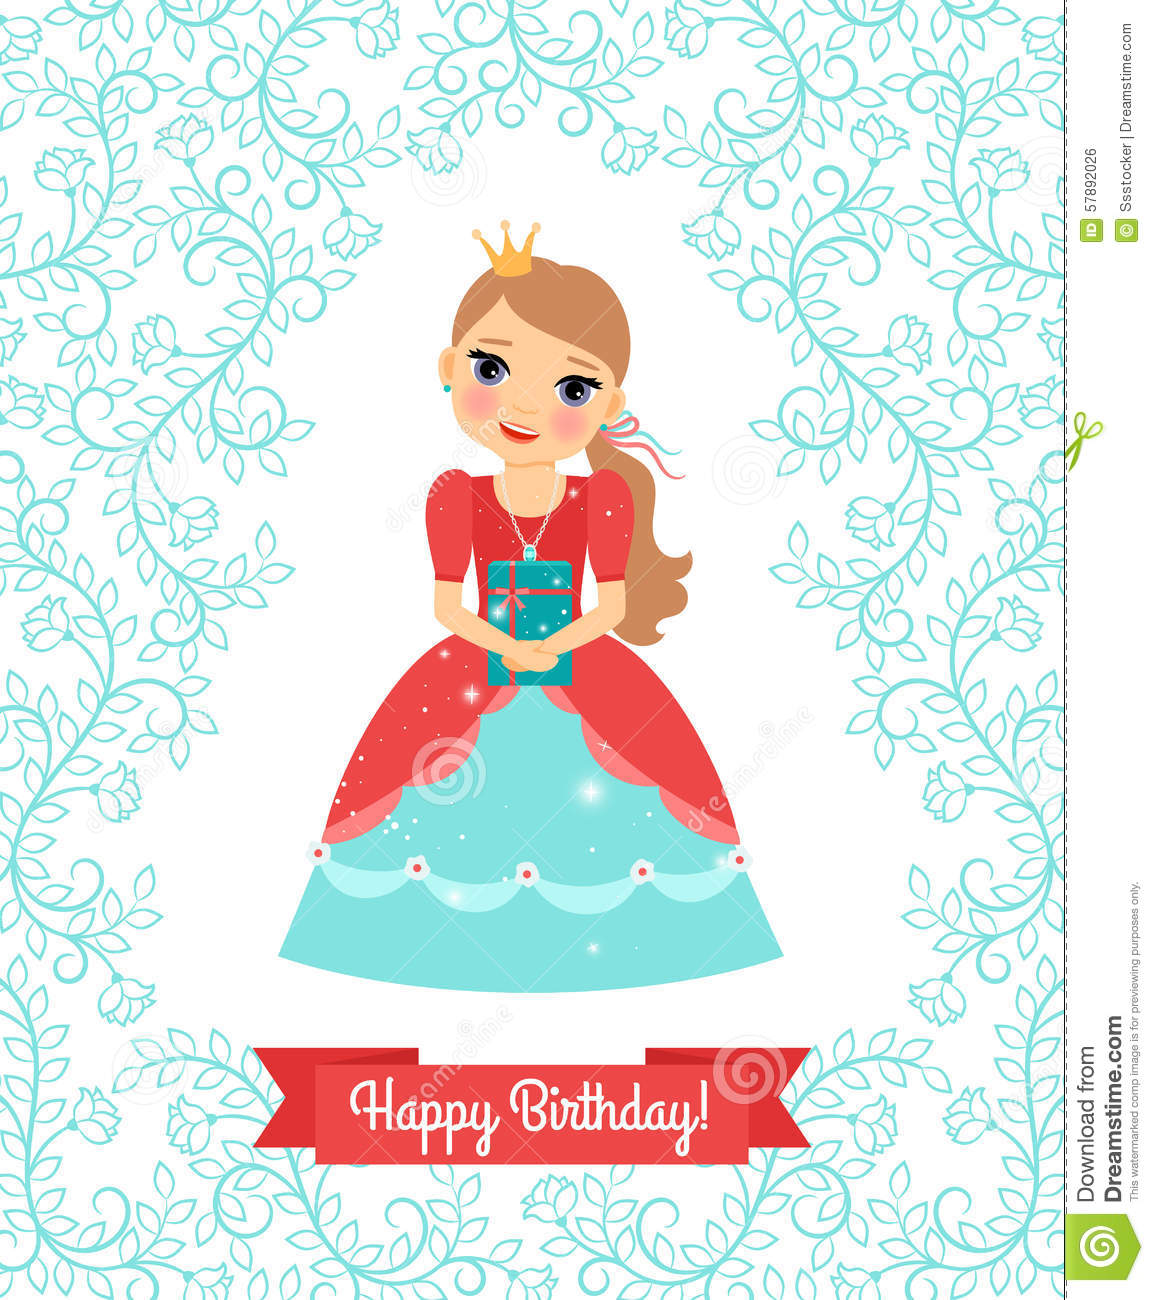 little princess birthday card ; little-princess-happy-birthday-card-vector-greeting-cute-floral-frame-ribbon-your-text-57892026